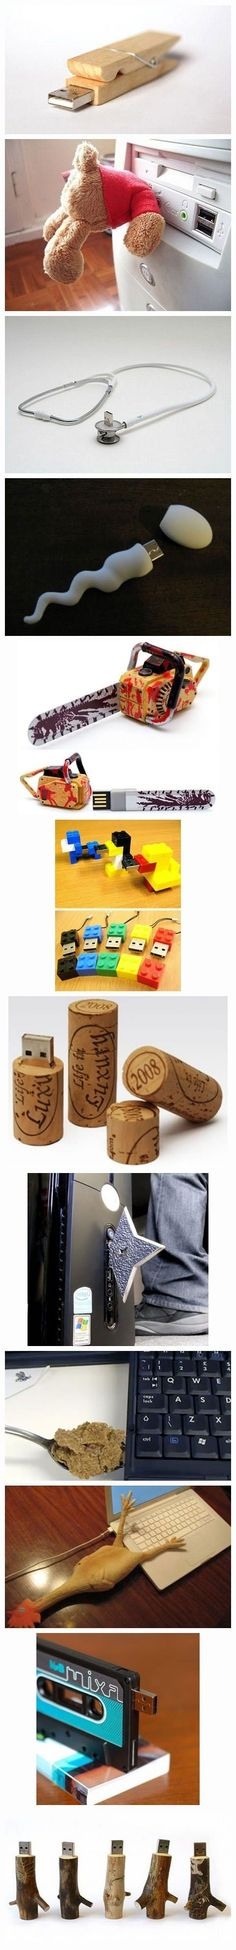 Creative USB flash drives - The Meta Picture